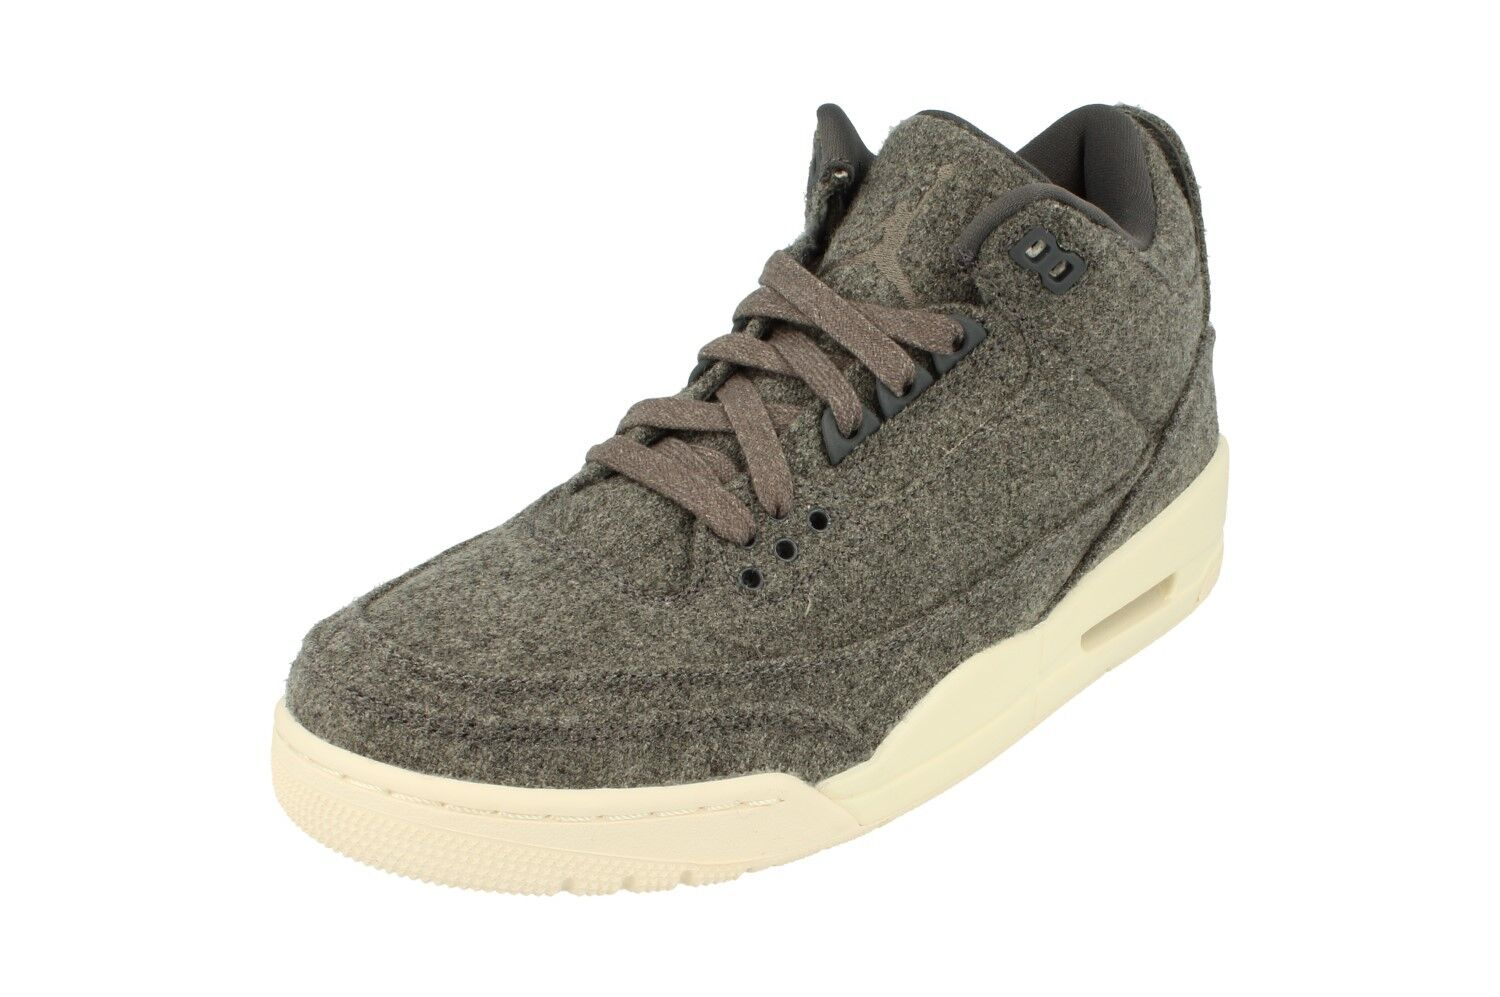 Nike Air Jordan 3 Retro Wool Mens Hi Top Trainers 854263 Sneakers Shoes 004